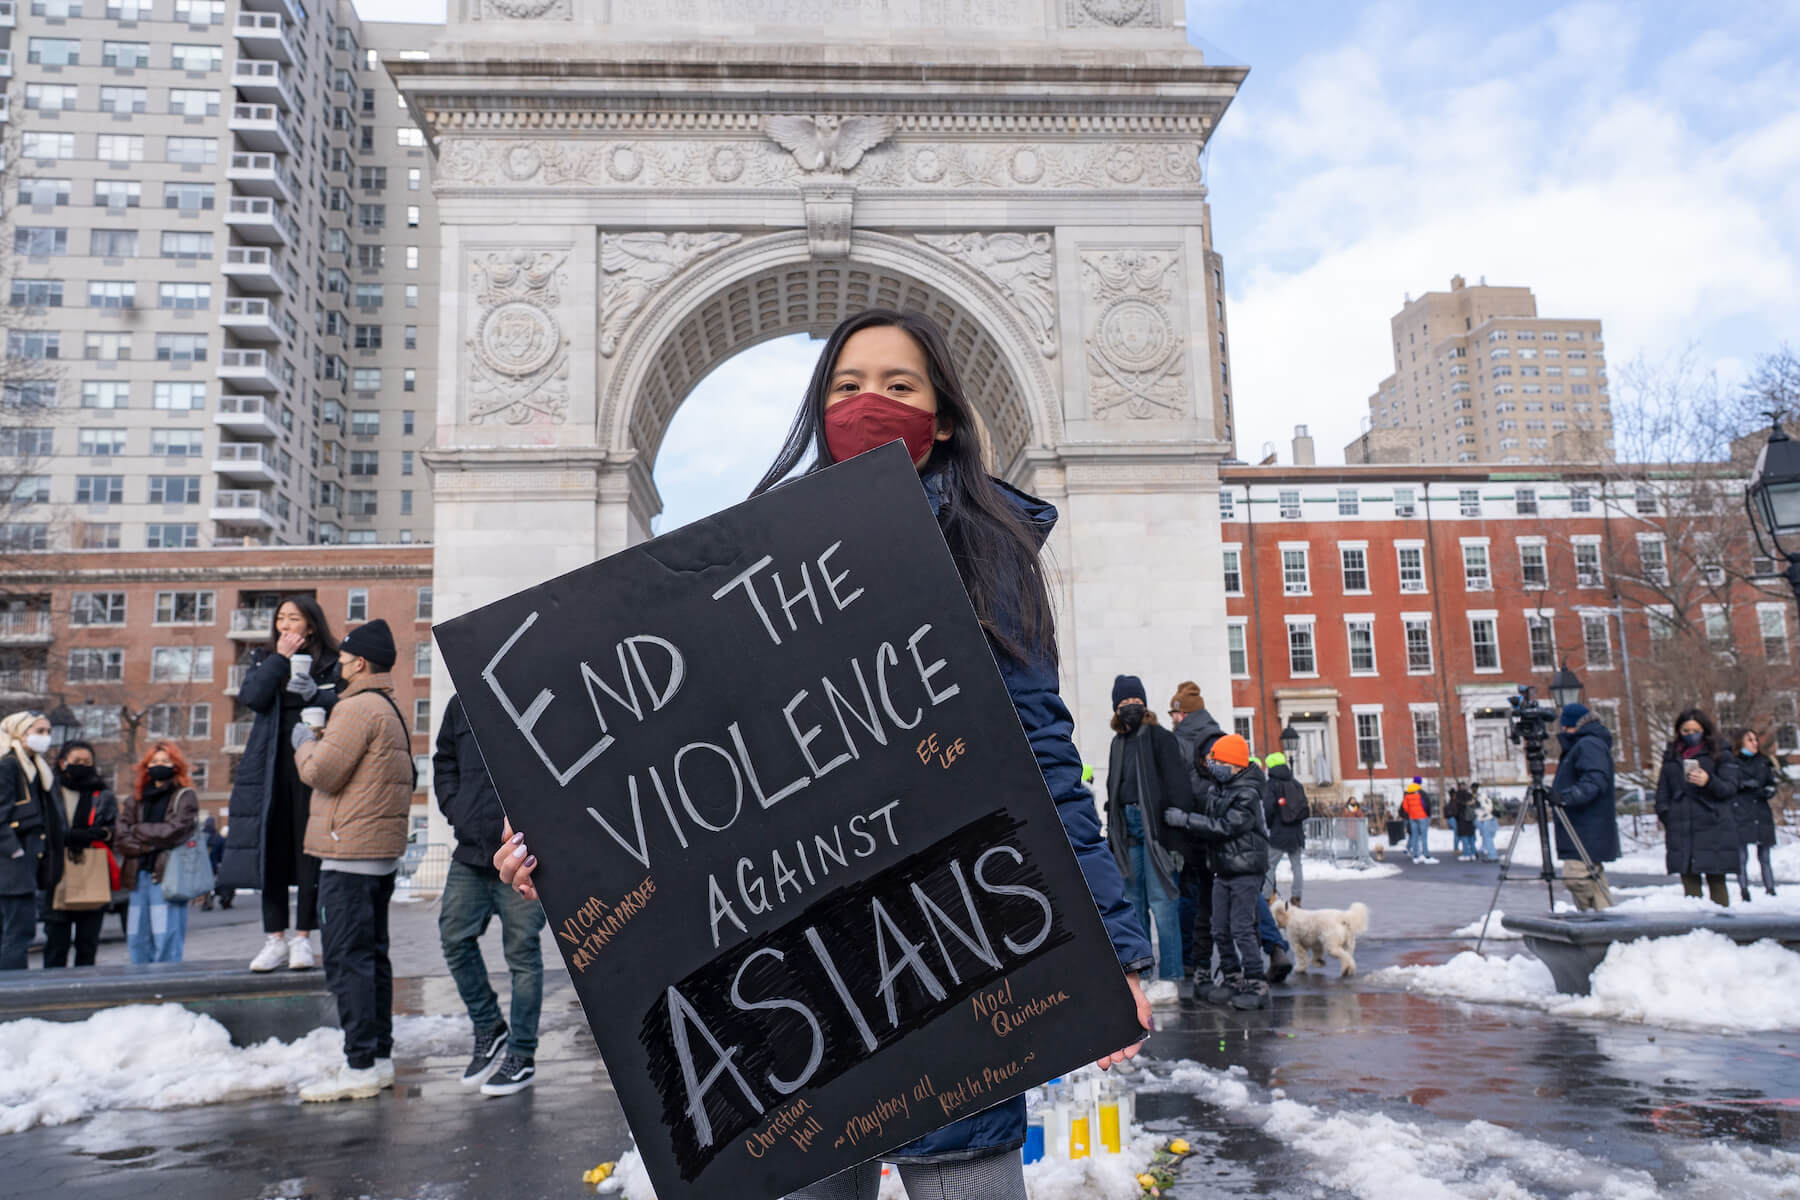 """Demonstrator at a rally holds sign that reads, """"end the violence against asians"""""""